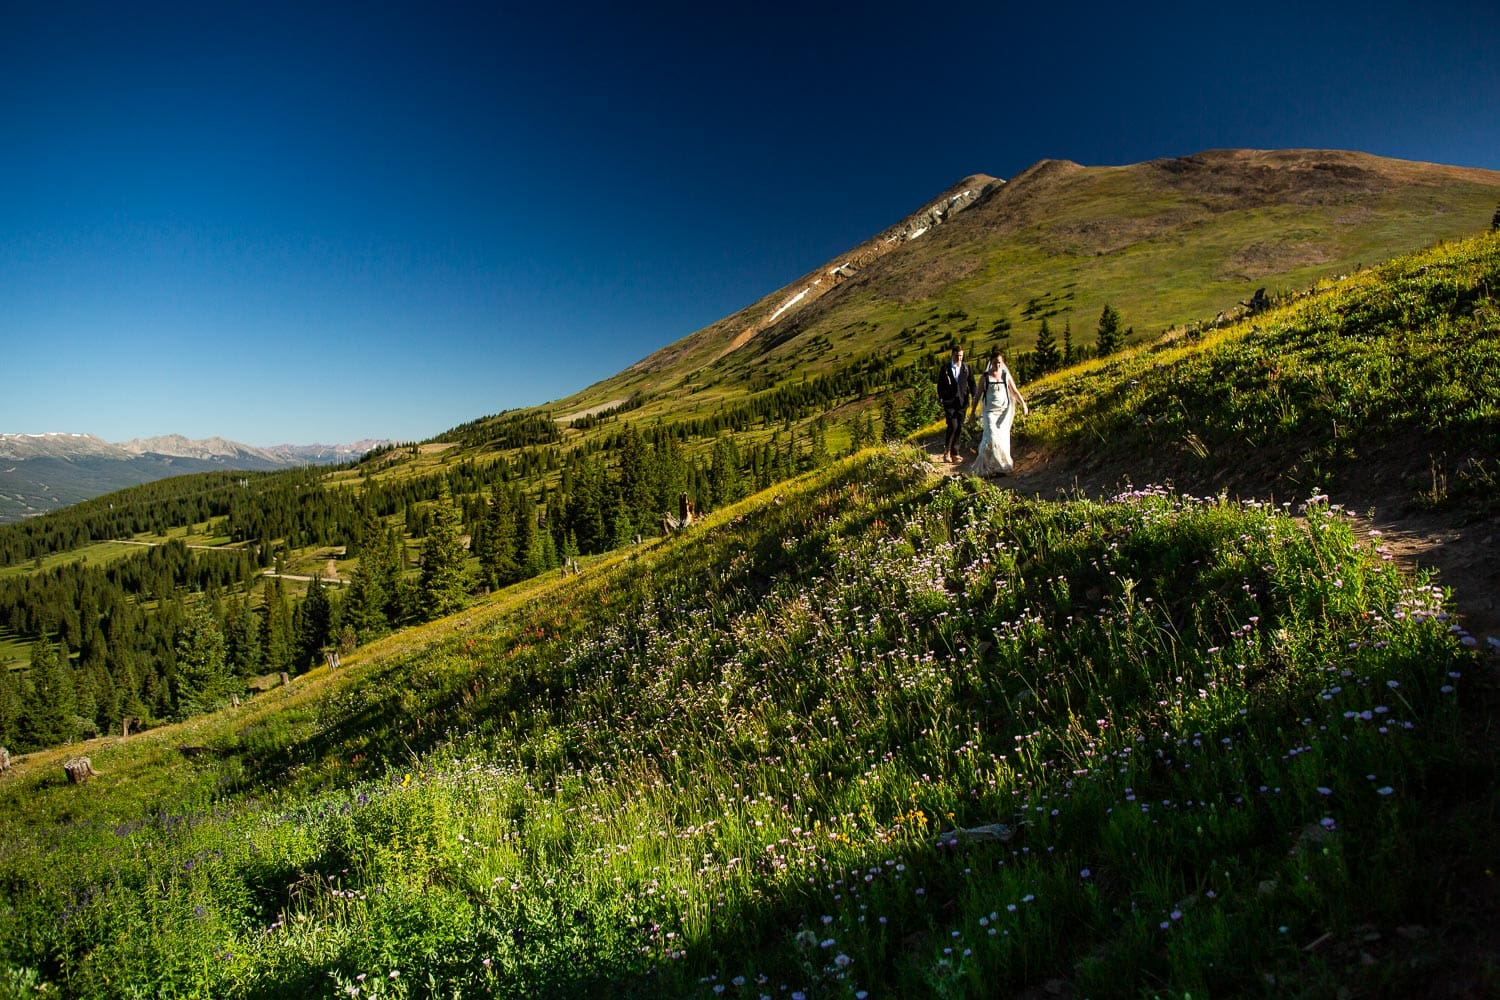 A hiking elopement couple with backpacks takes a trail near Breckenridge, Colorado.